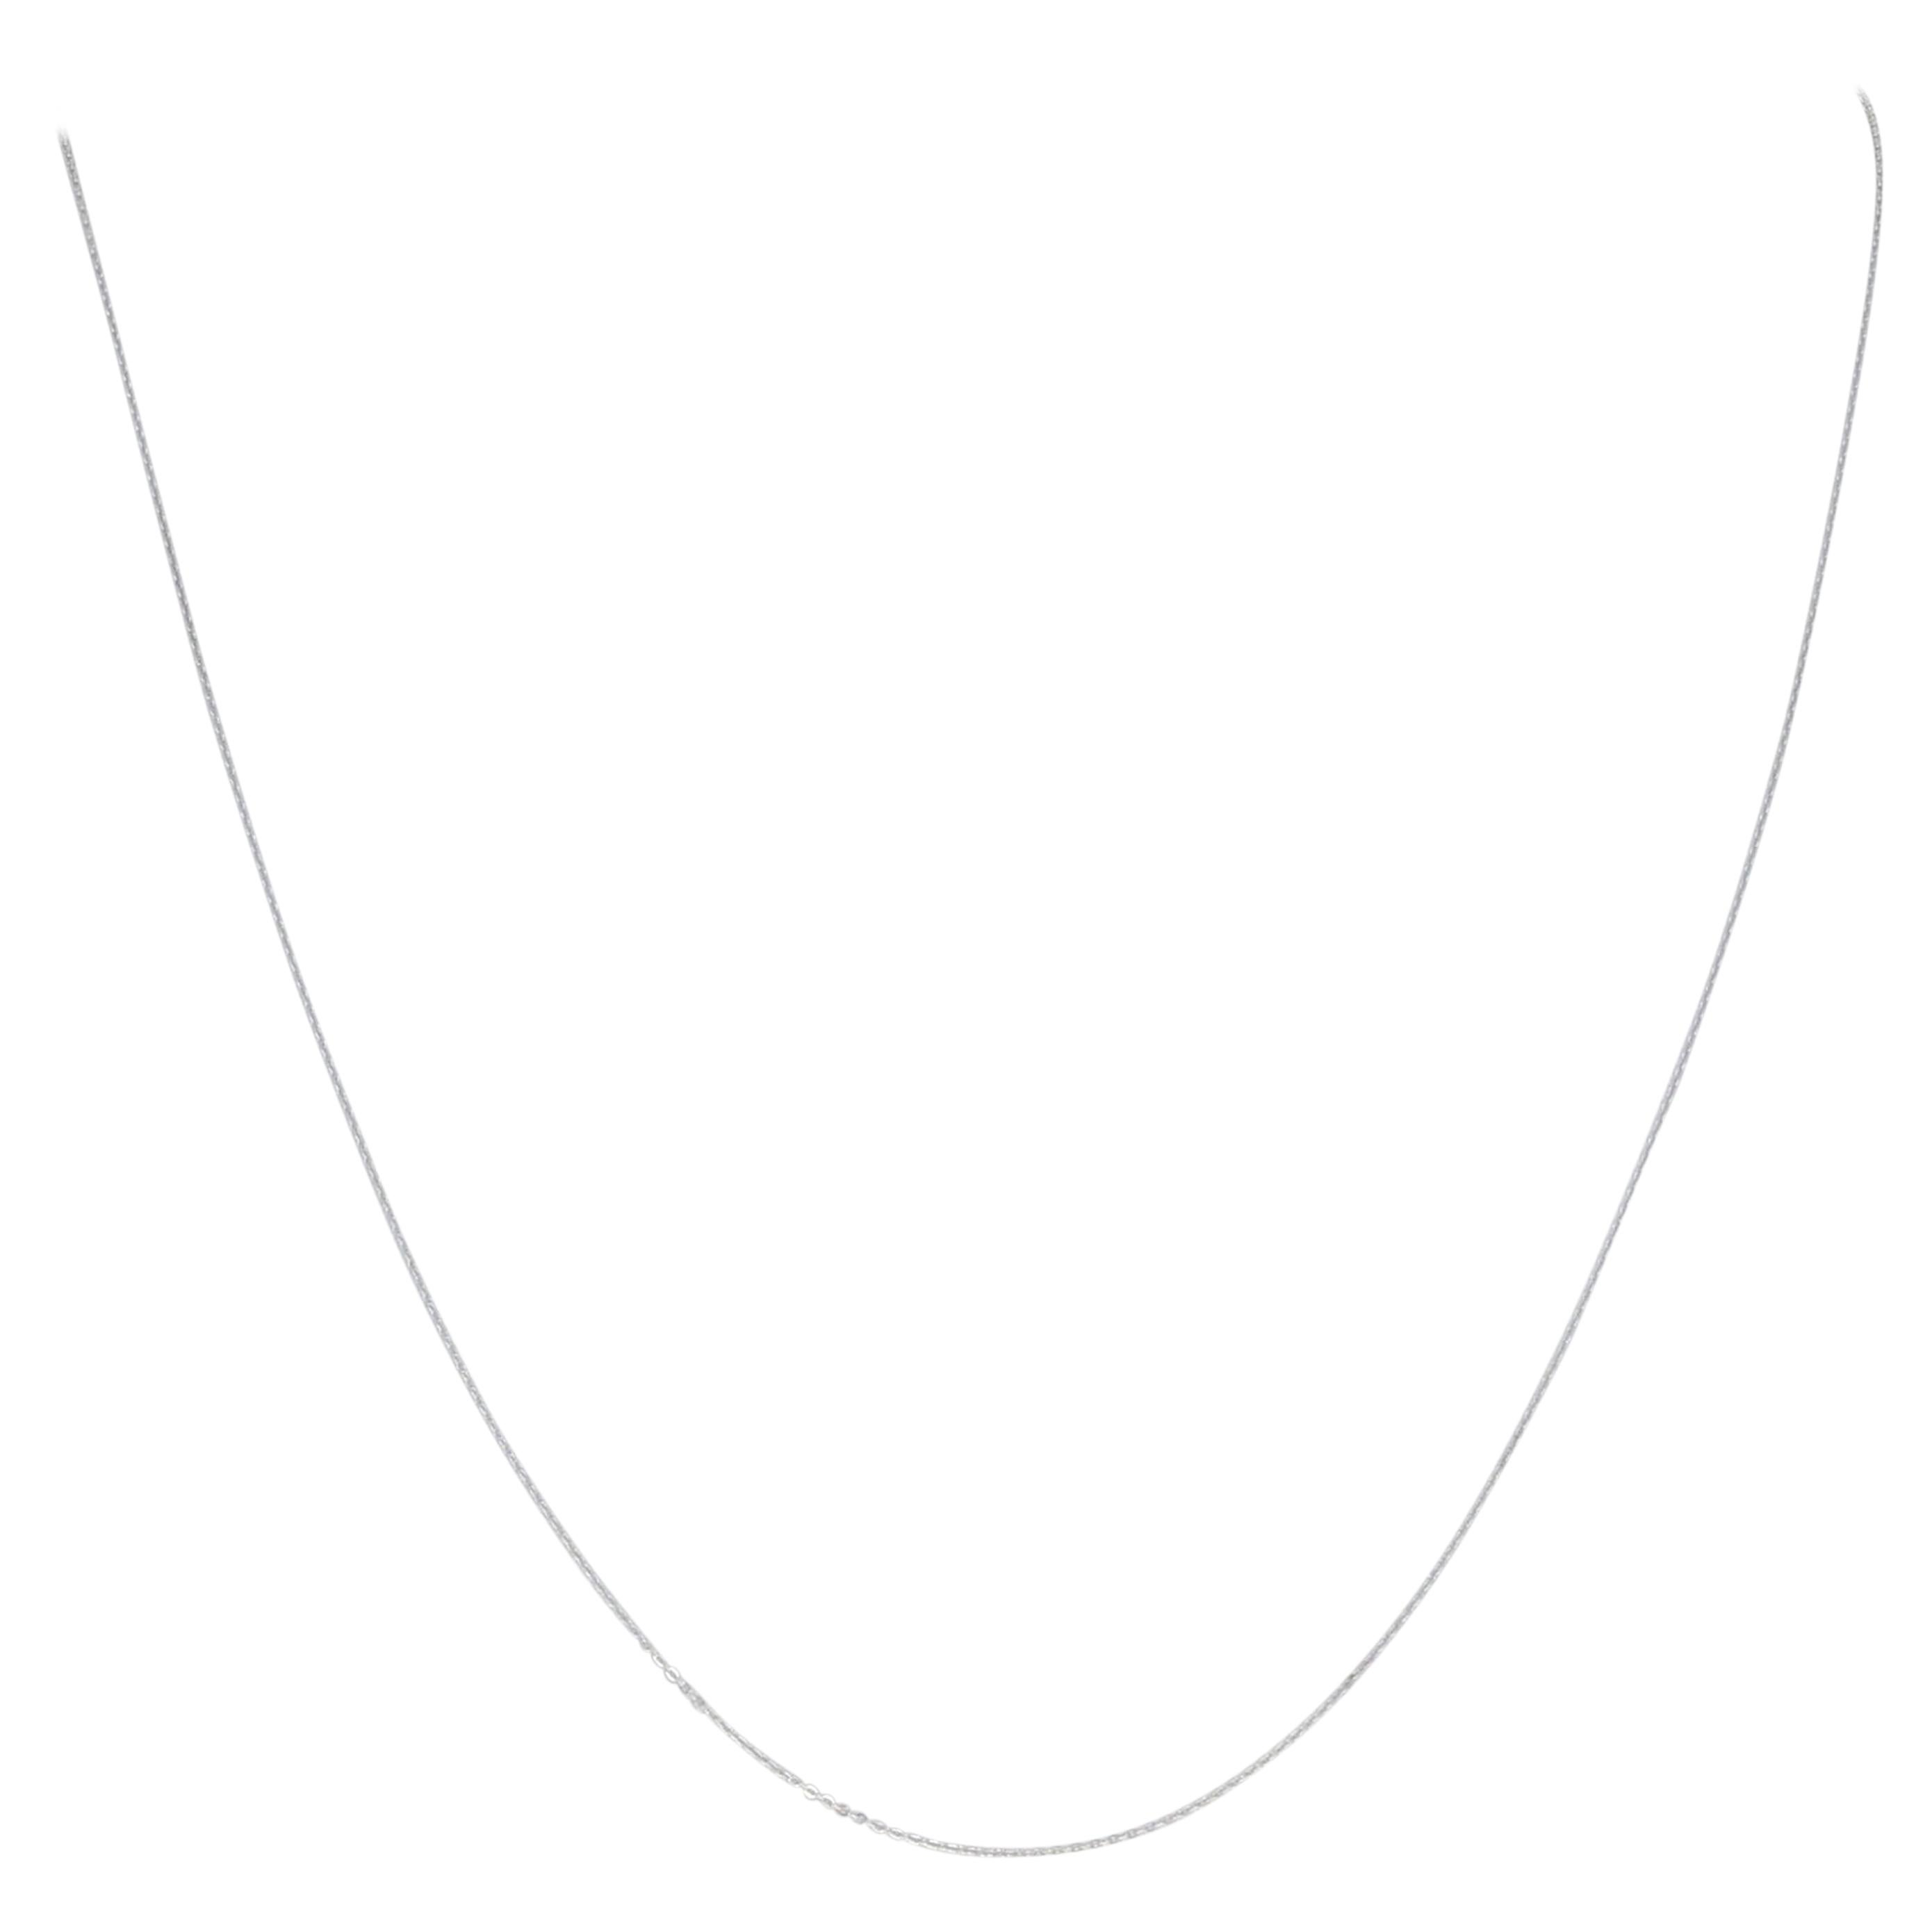 White Gold Cable Chain Necklace, 14 Karat Lobster Claw Clasp Adjustable Length